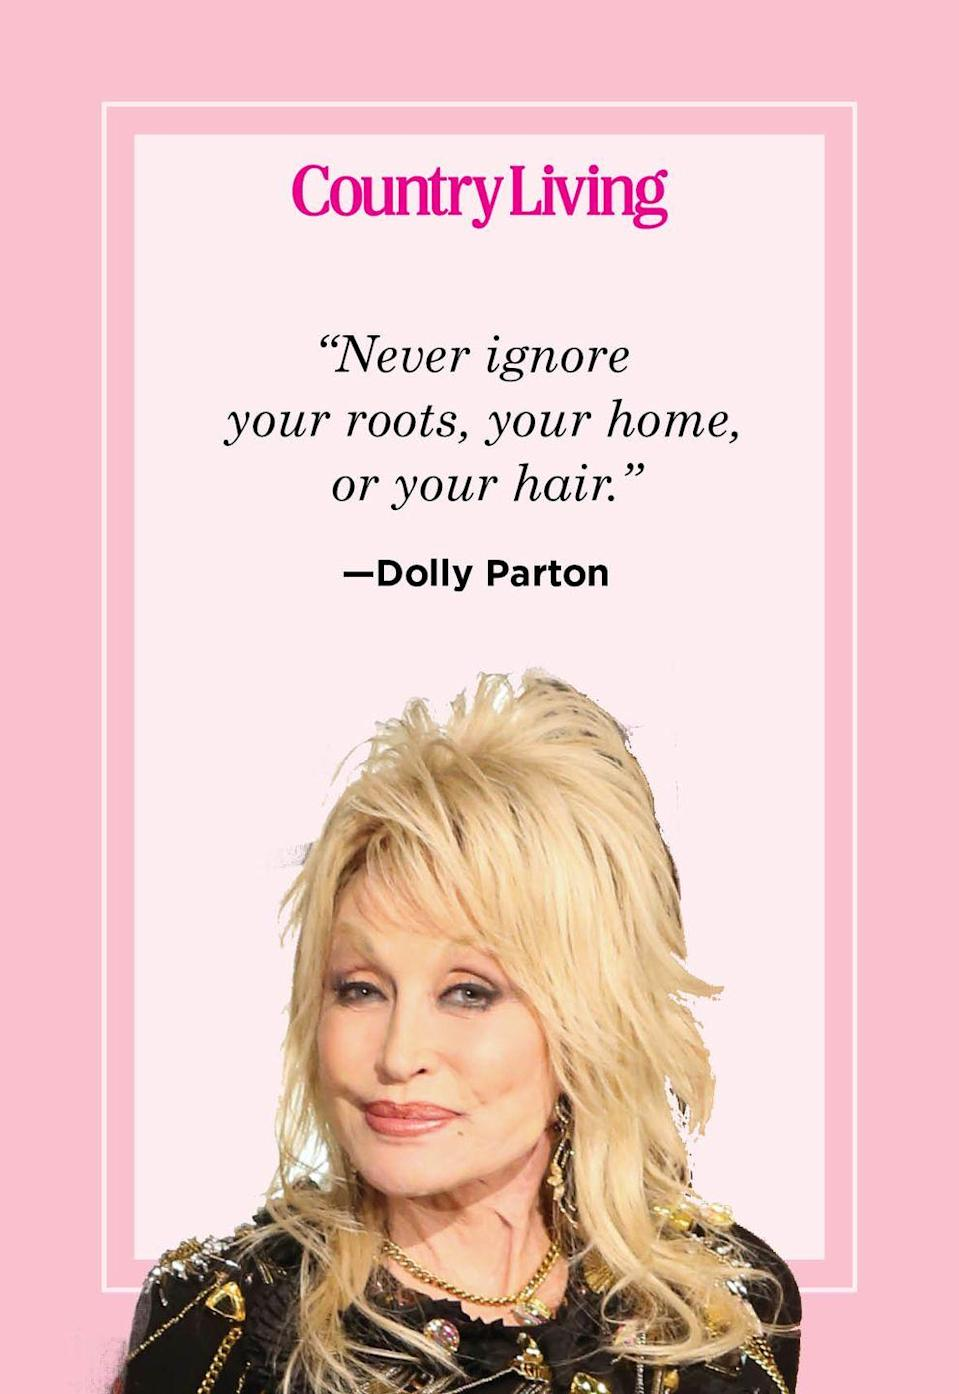 "<p>""Never ignore your roots, your home, or your hair.""</p>"